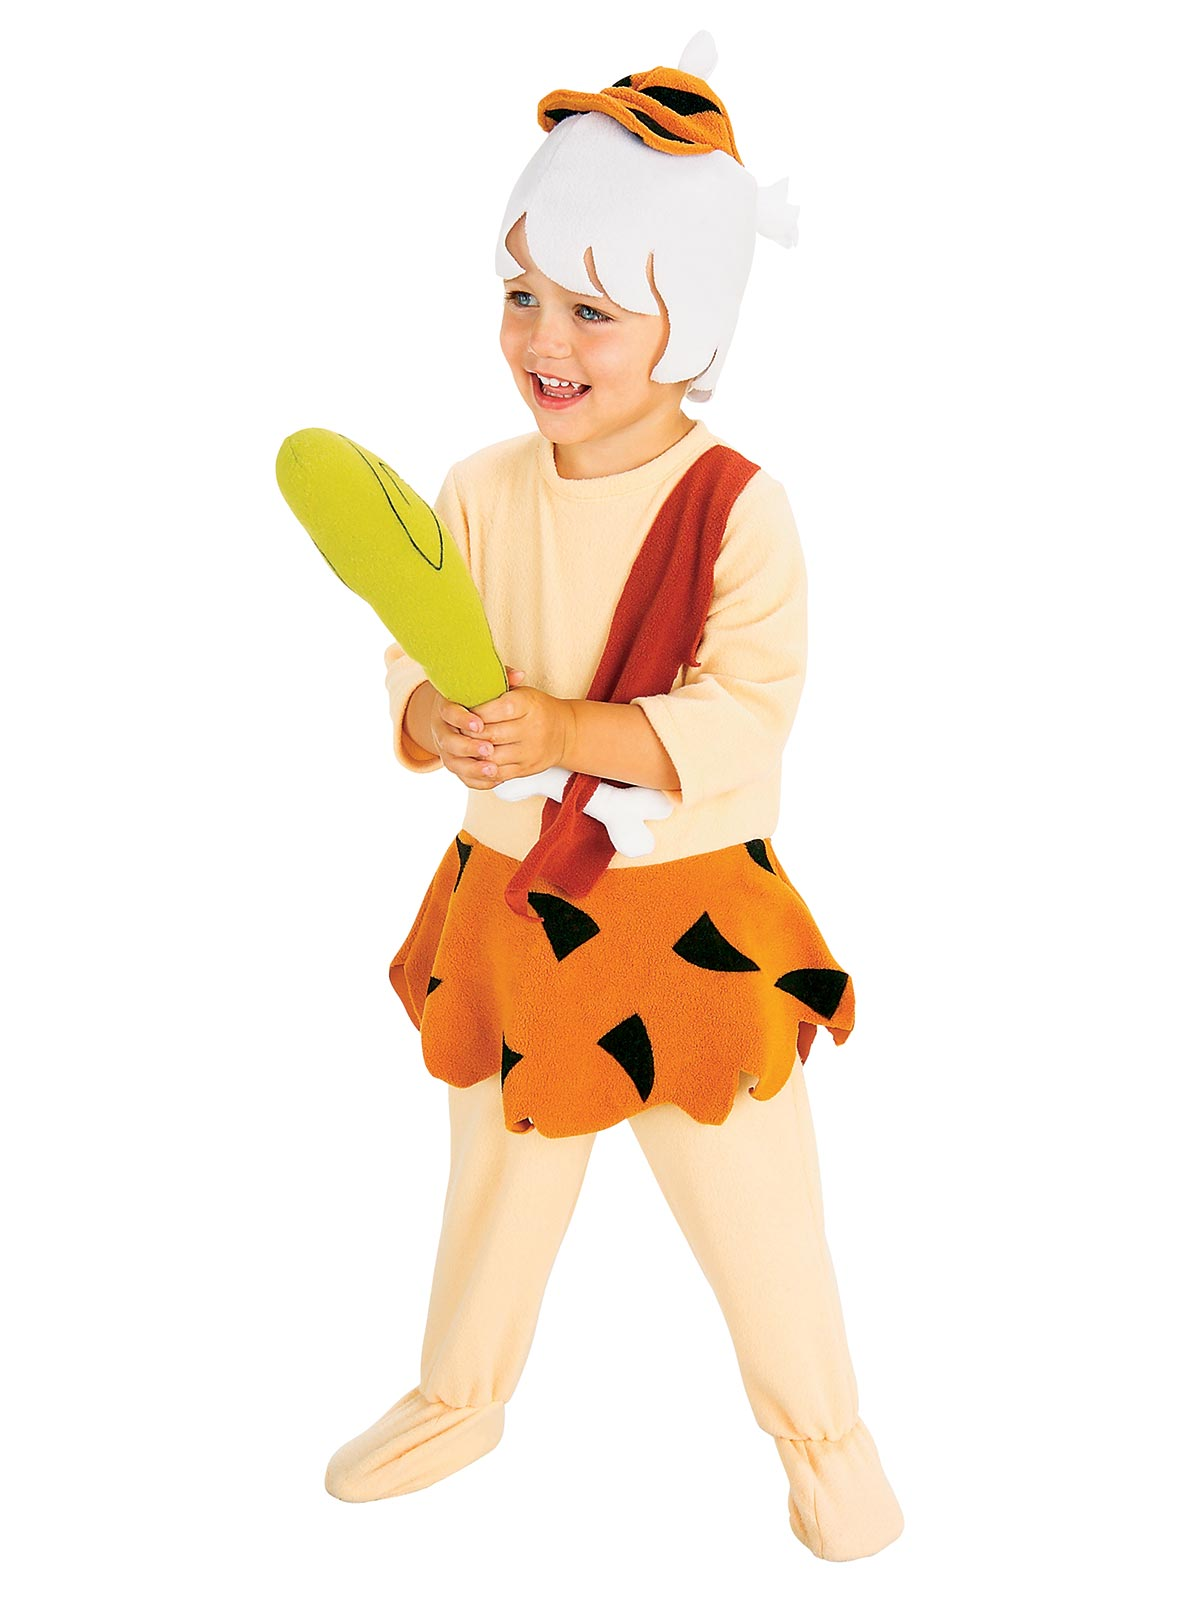 Bamm Bamm The Flintstones Deluxe Child Costume - Buy Online Only